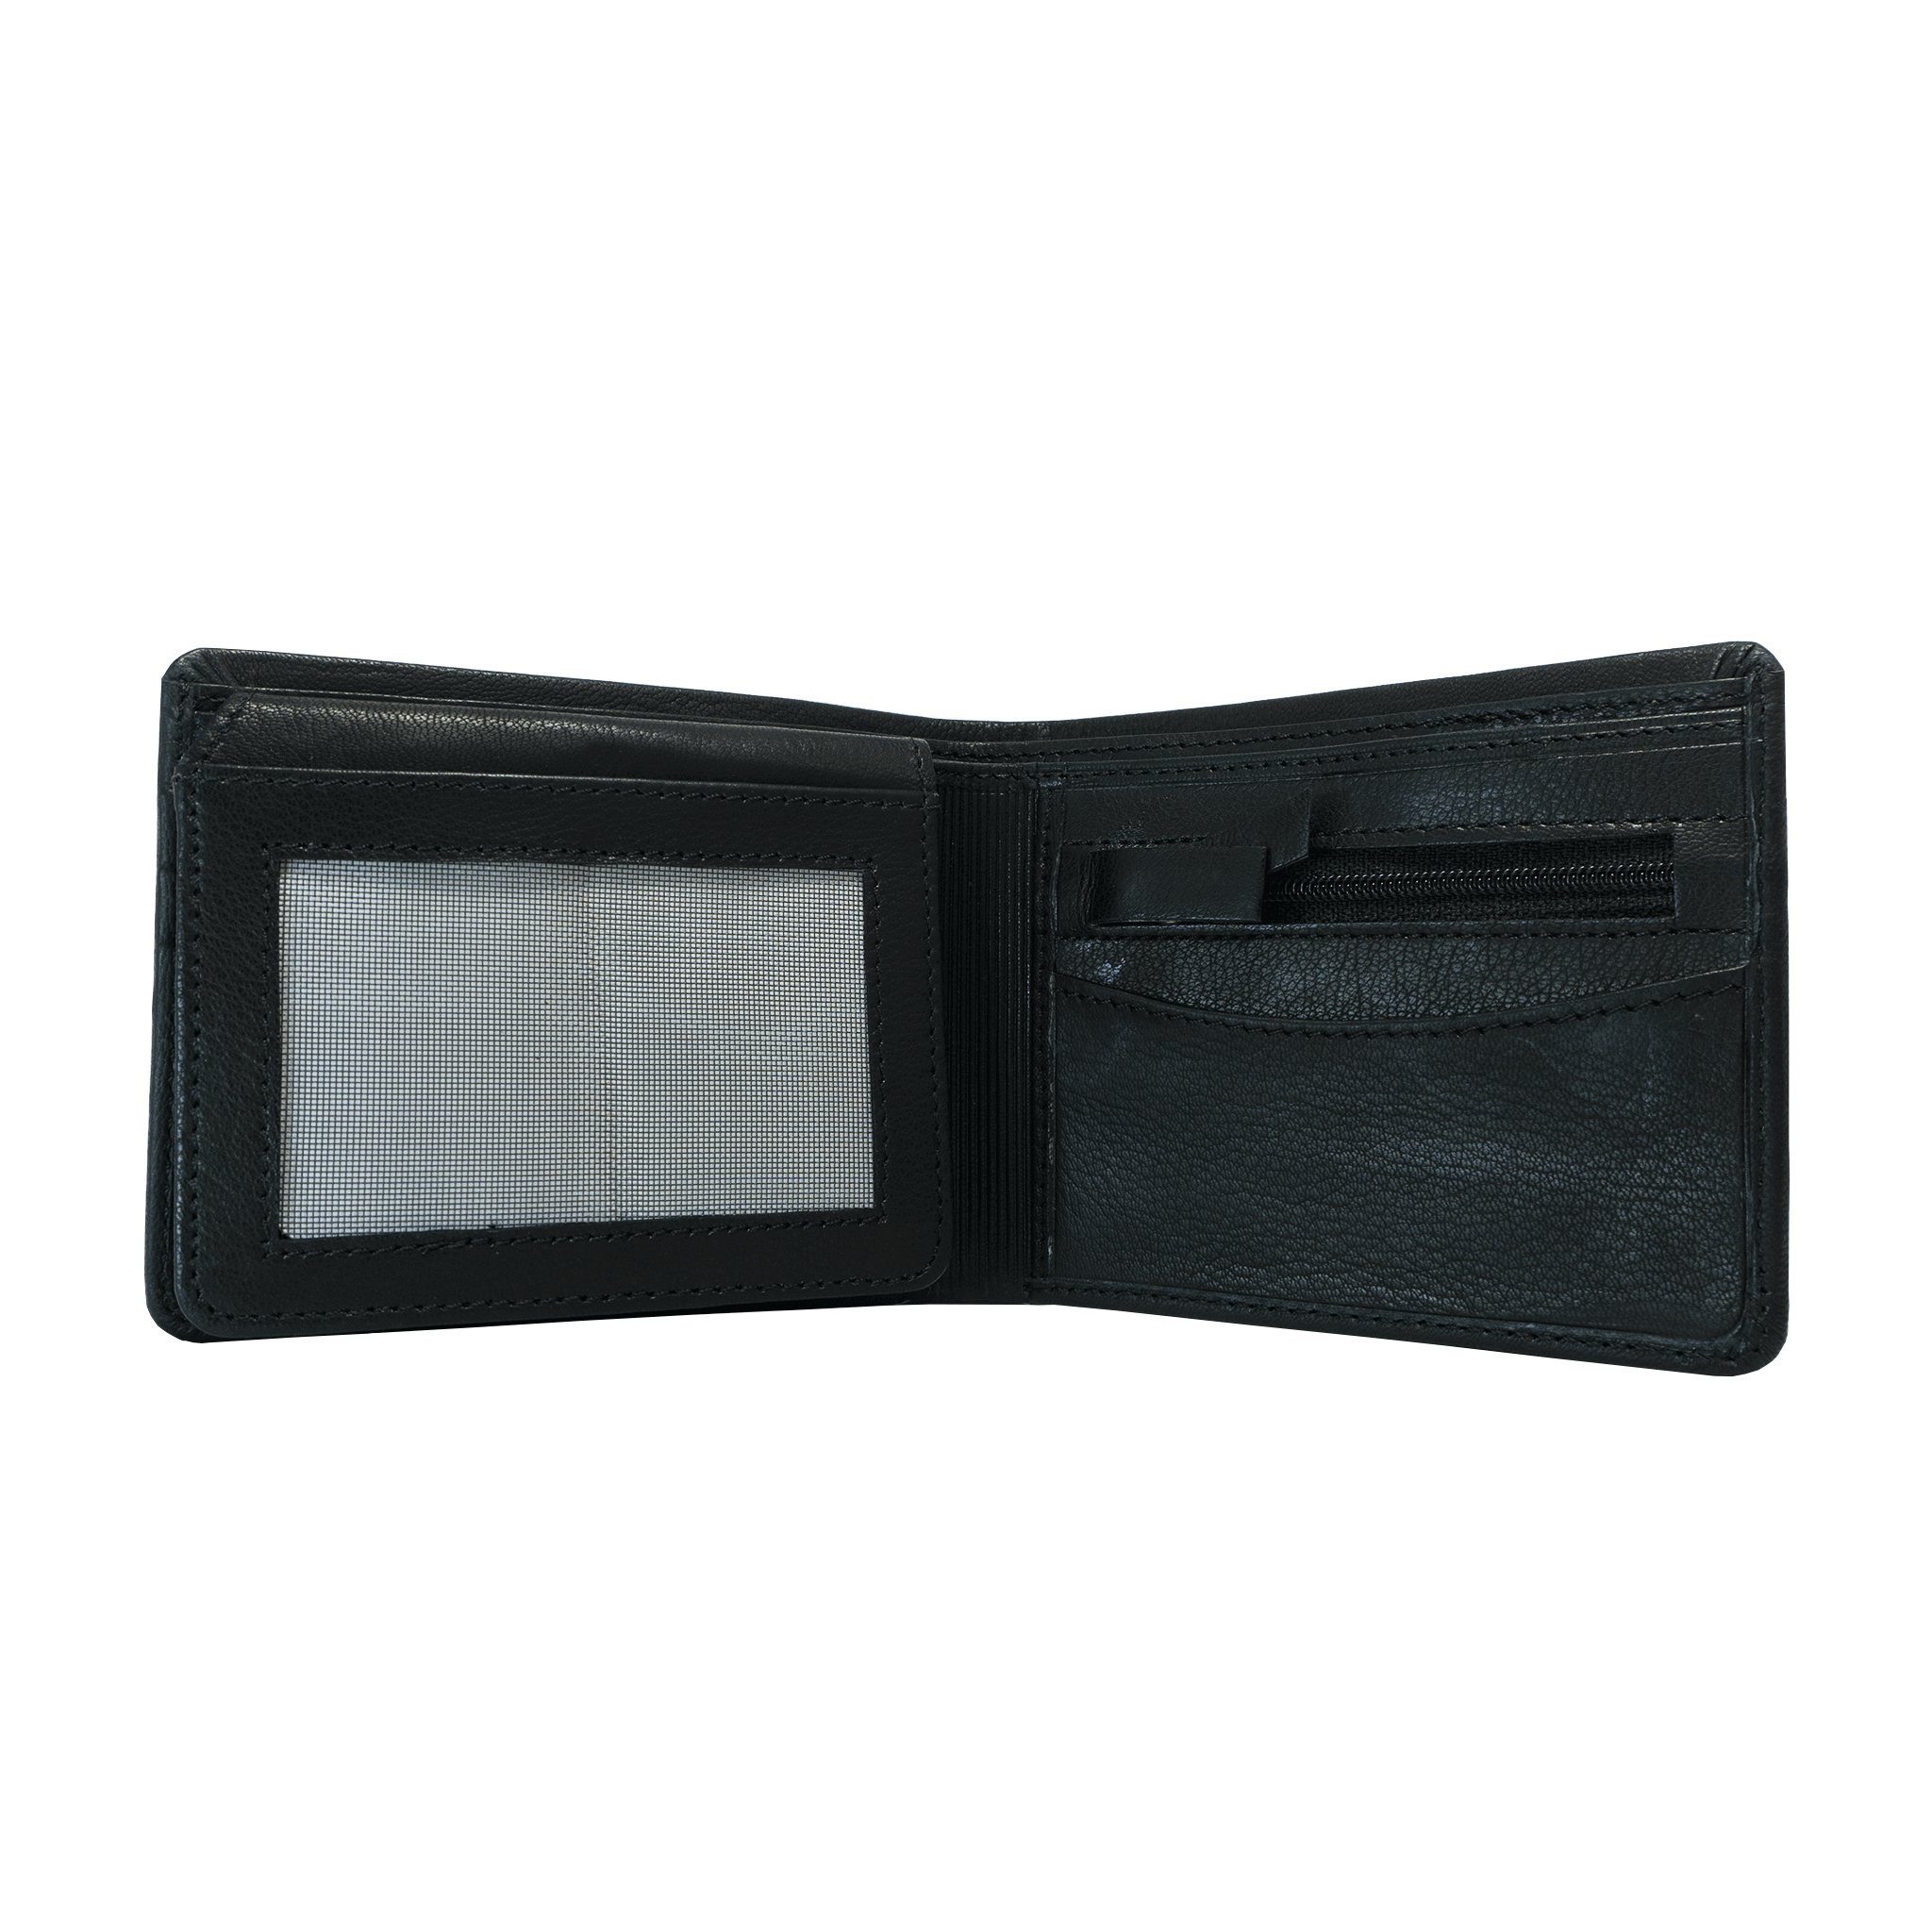 Handcrafted genuine black leather open wallet by RELUKS